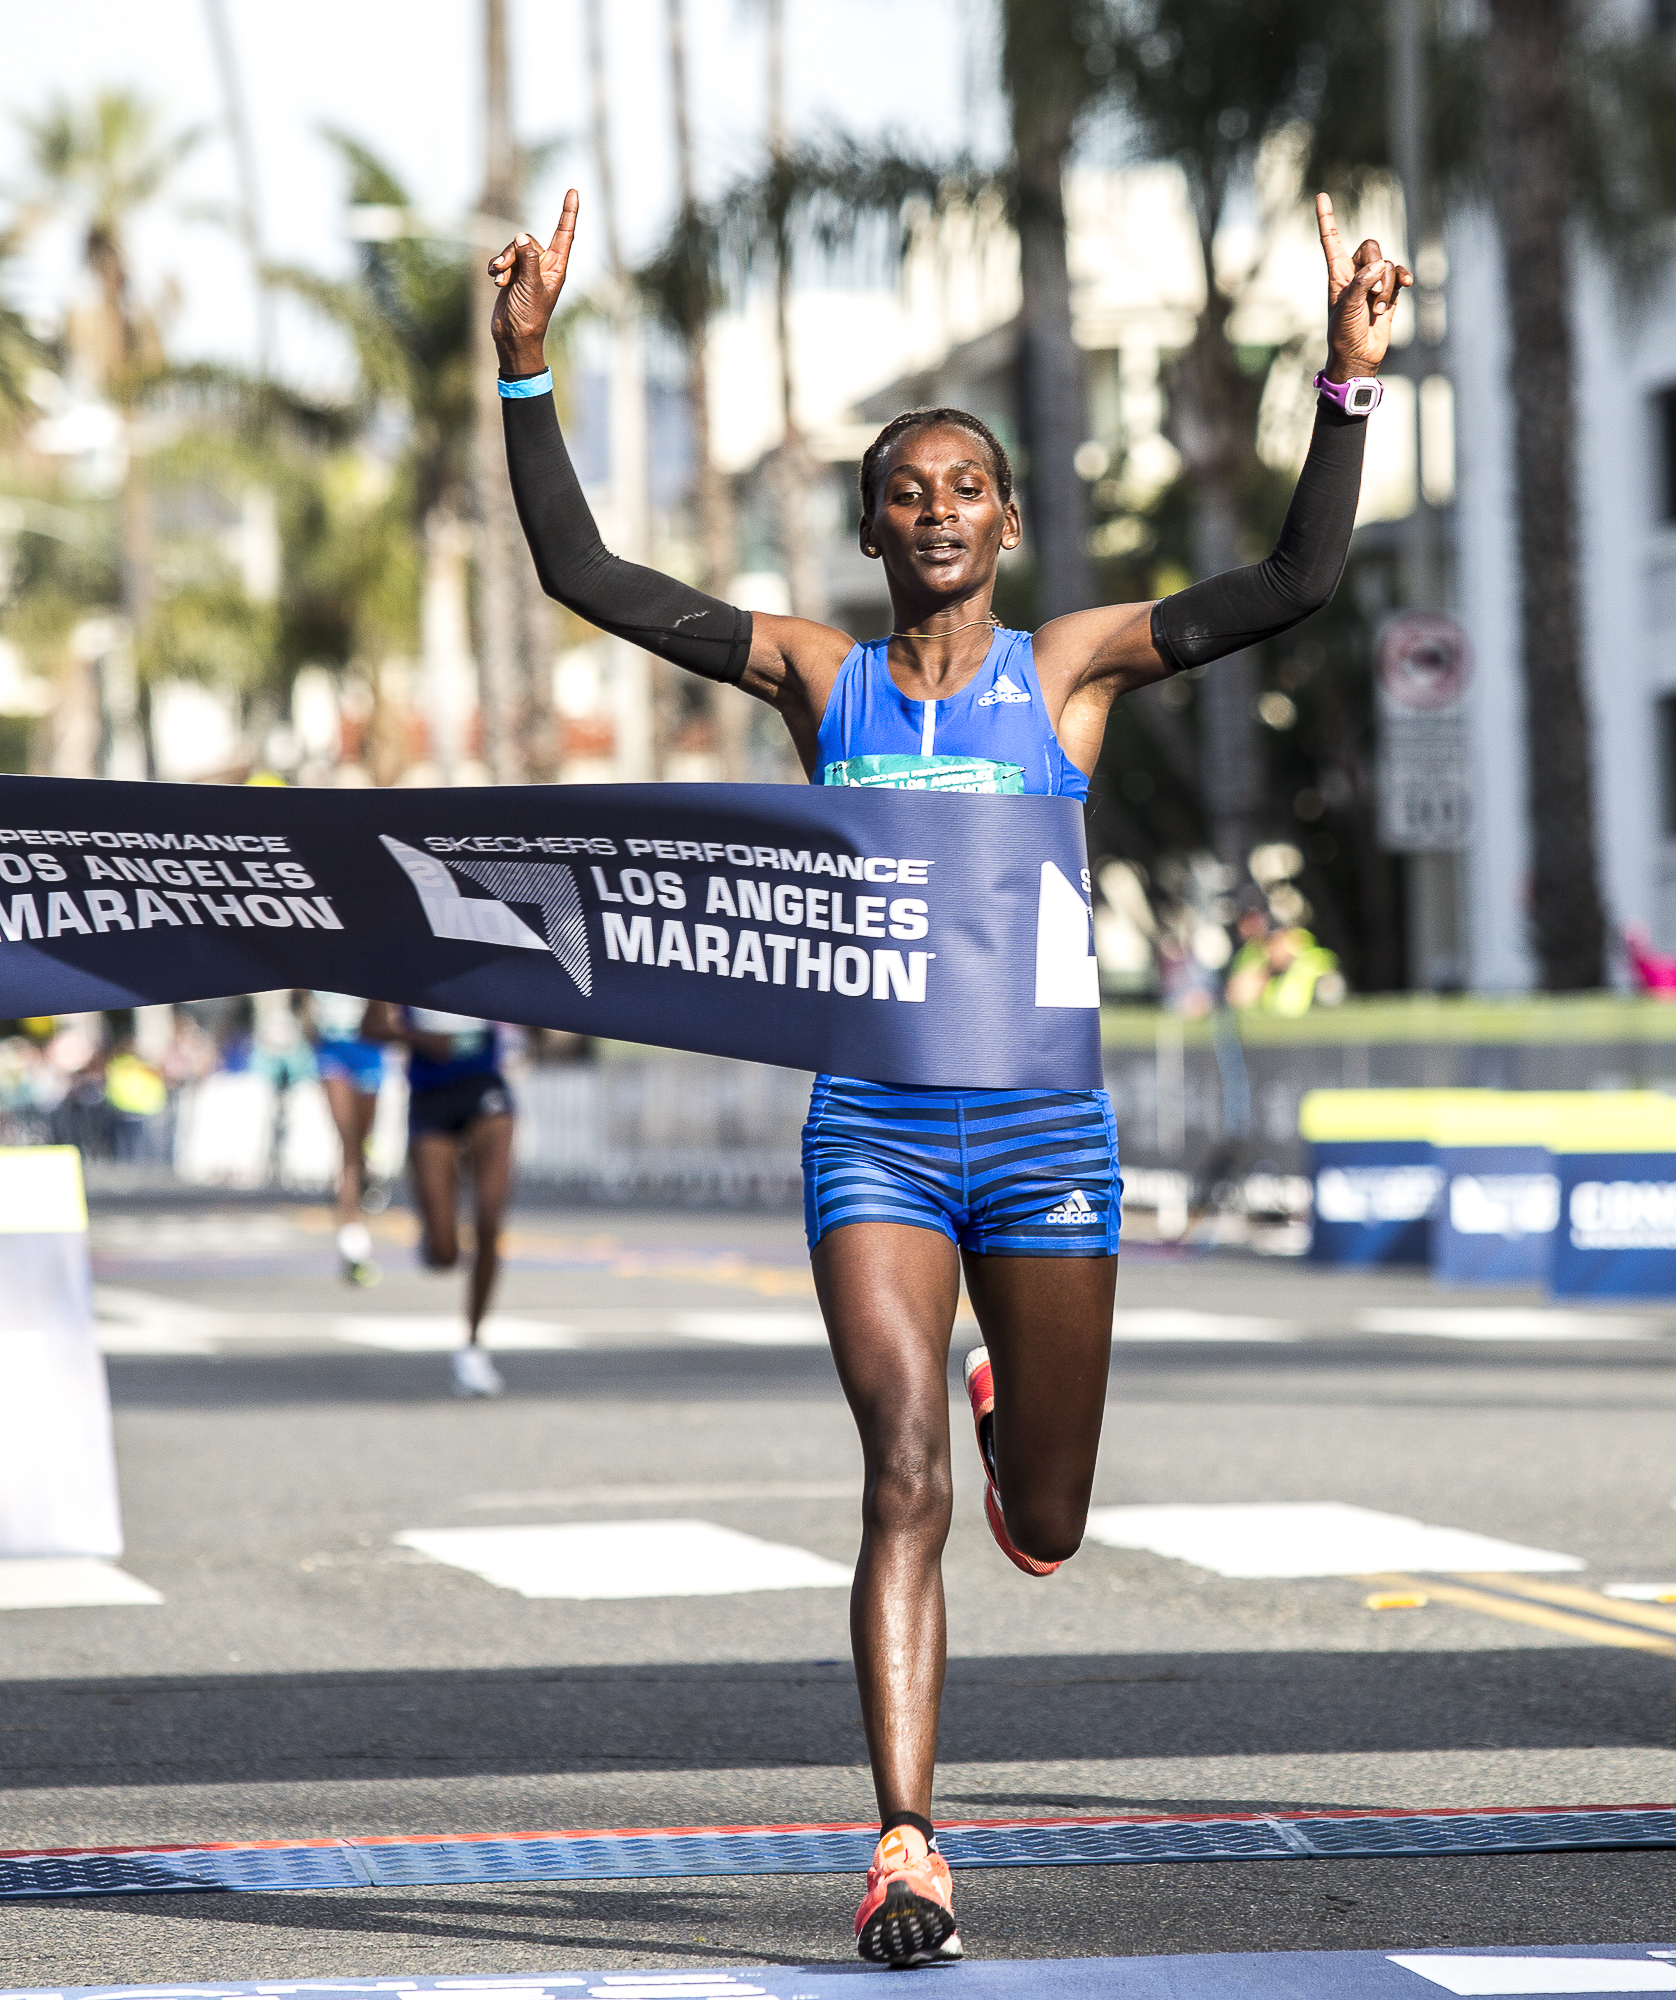 Sule Gedo crosses the finish line, wining the pro-women's 33rd annual Los Angeles Marathon event with a time of 2:33:50 on March 18, 2018 in Santa Monica, California. (Matthew Martin/Corsair Photo)